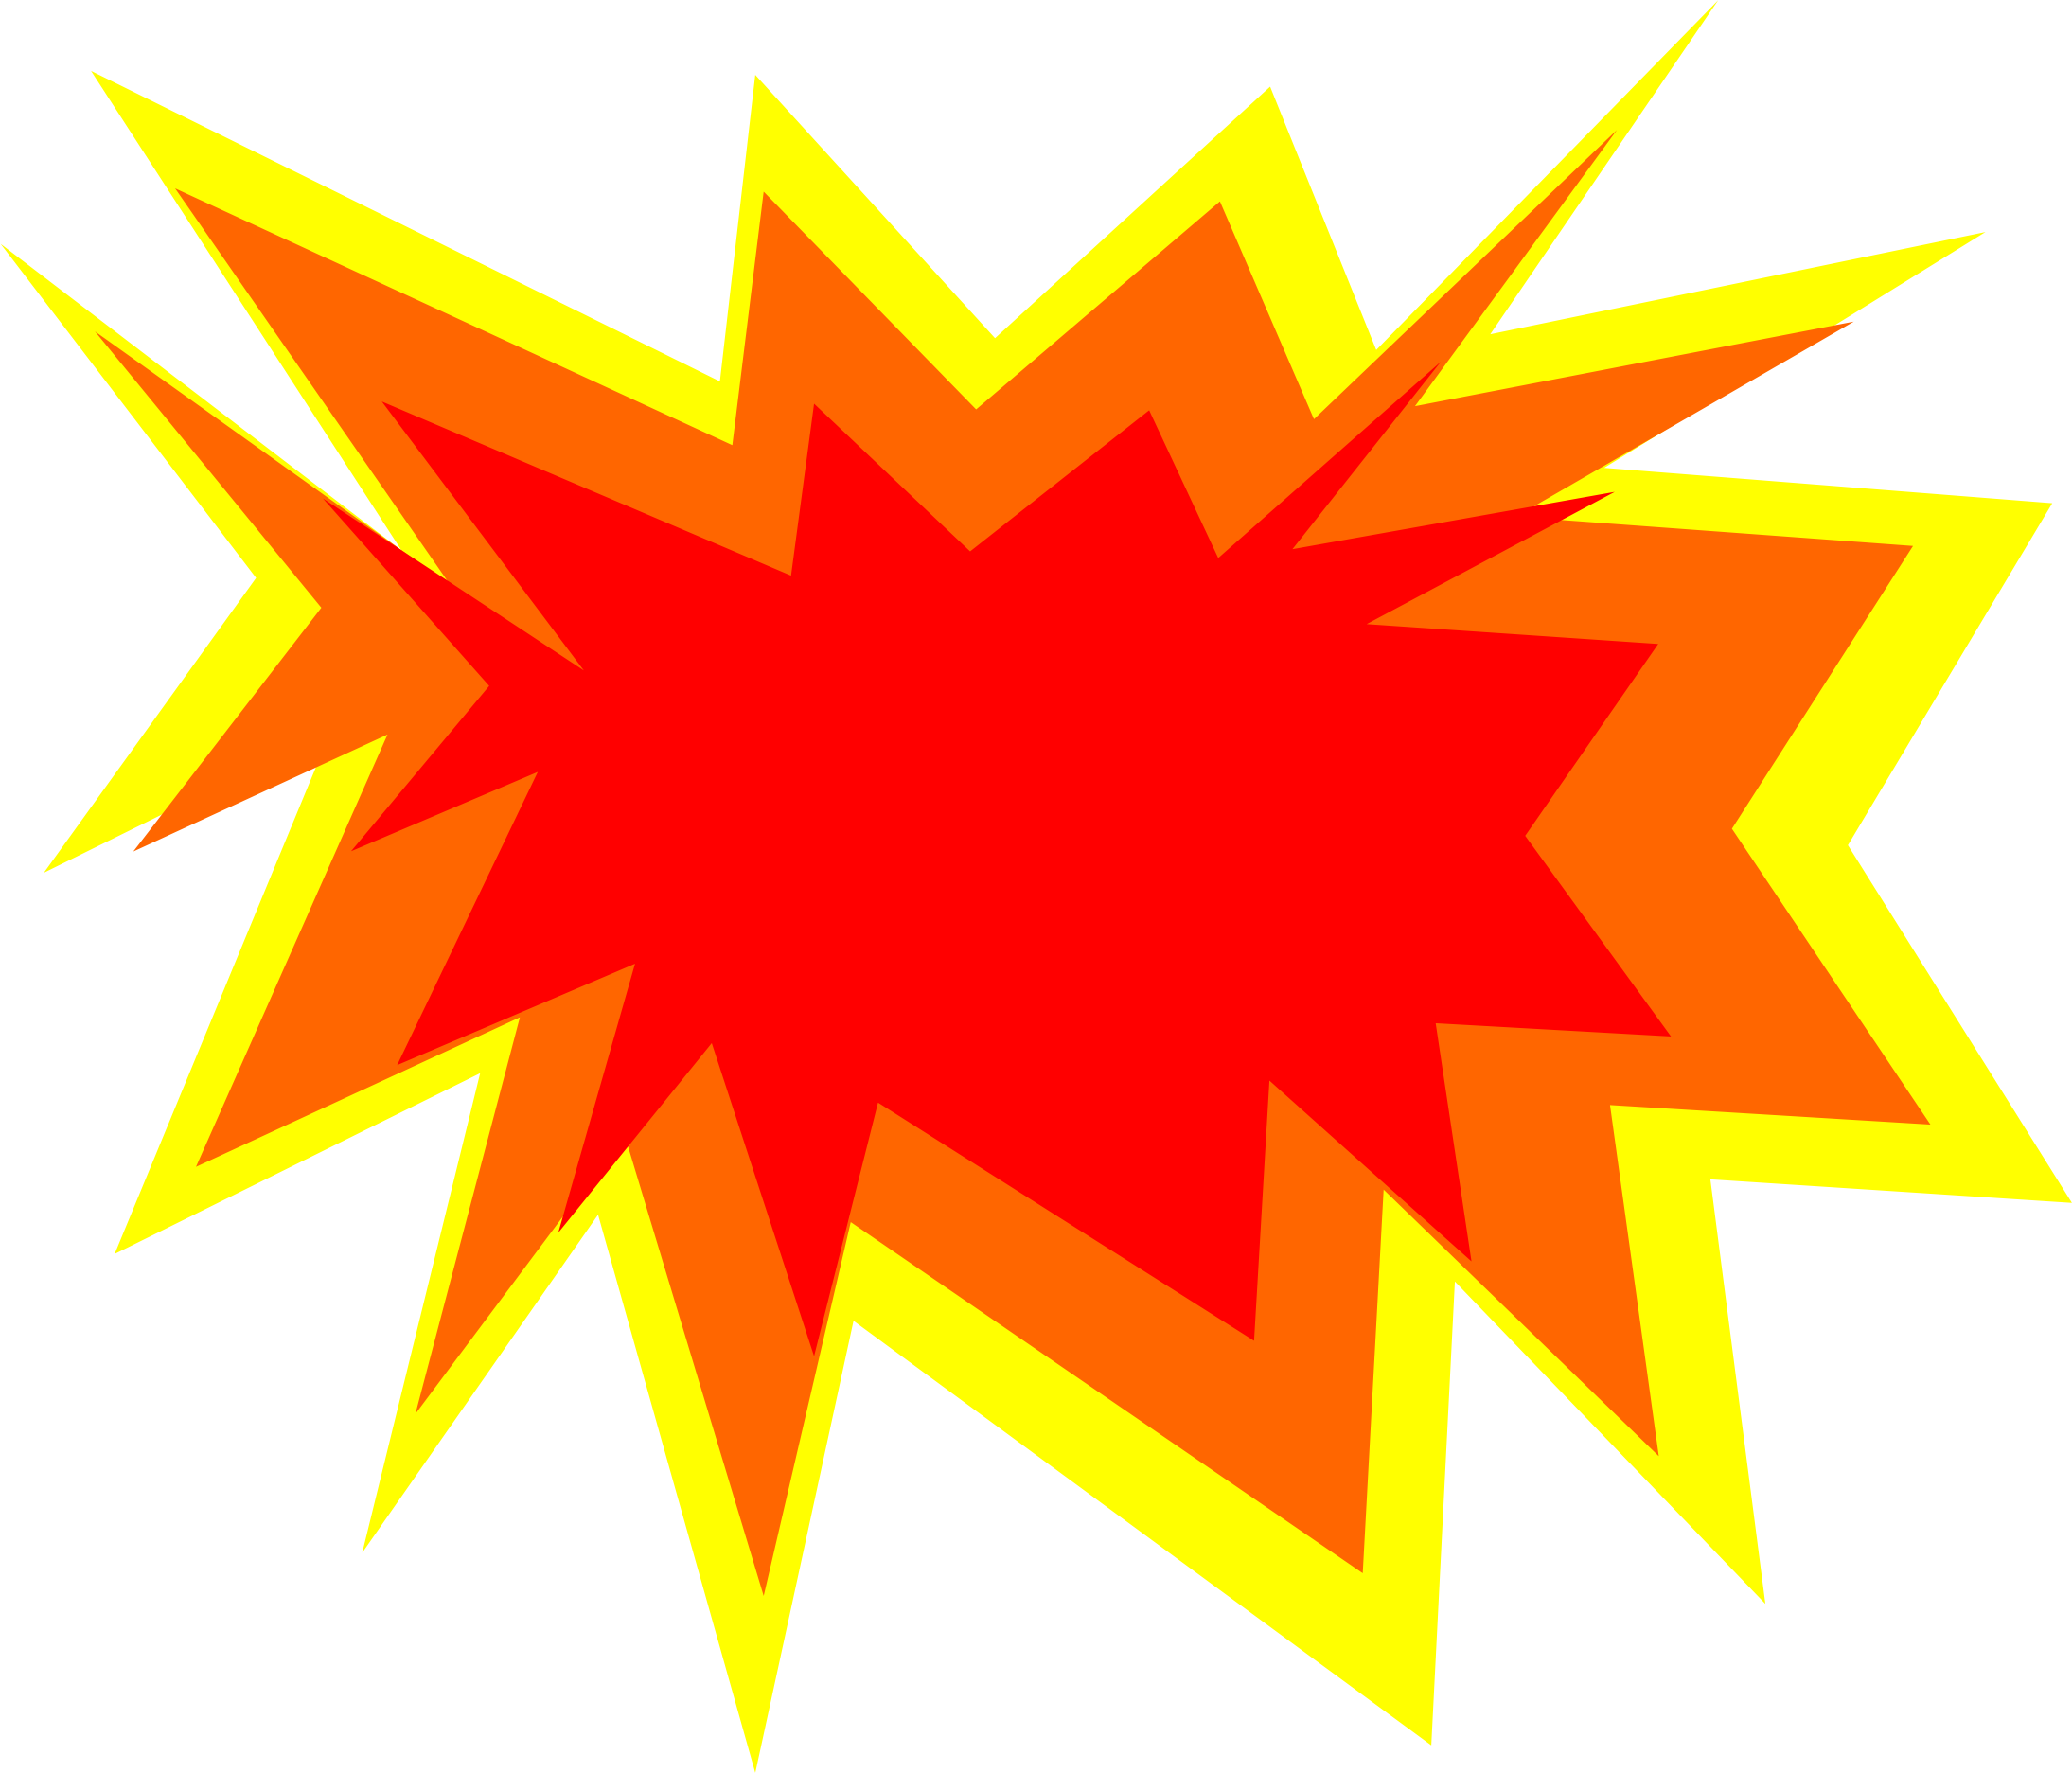 image for free explosion 14 clip art explosion clip art free rh pinterest co uk explosion clipart png explosion clipart gif